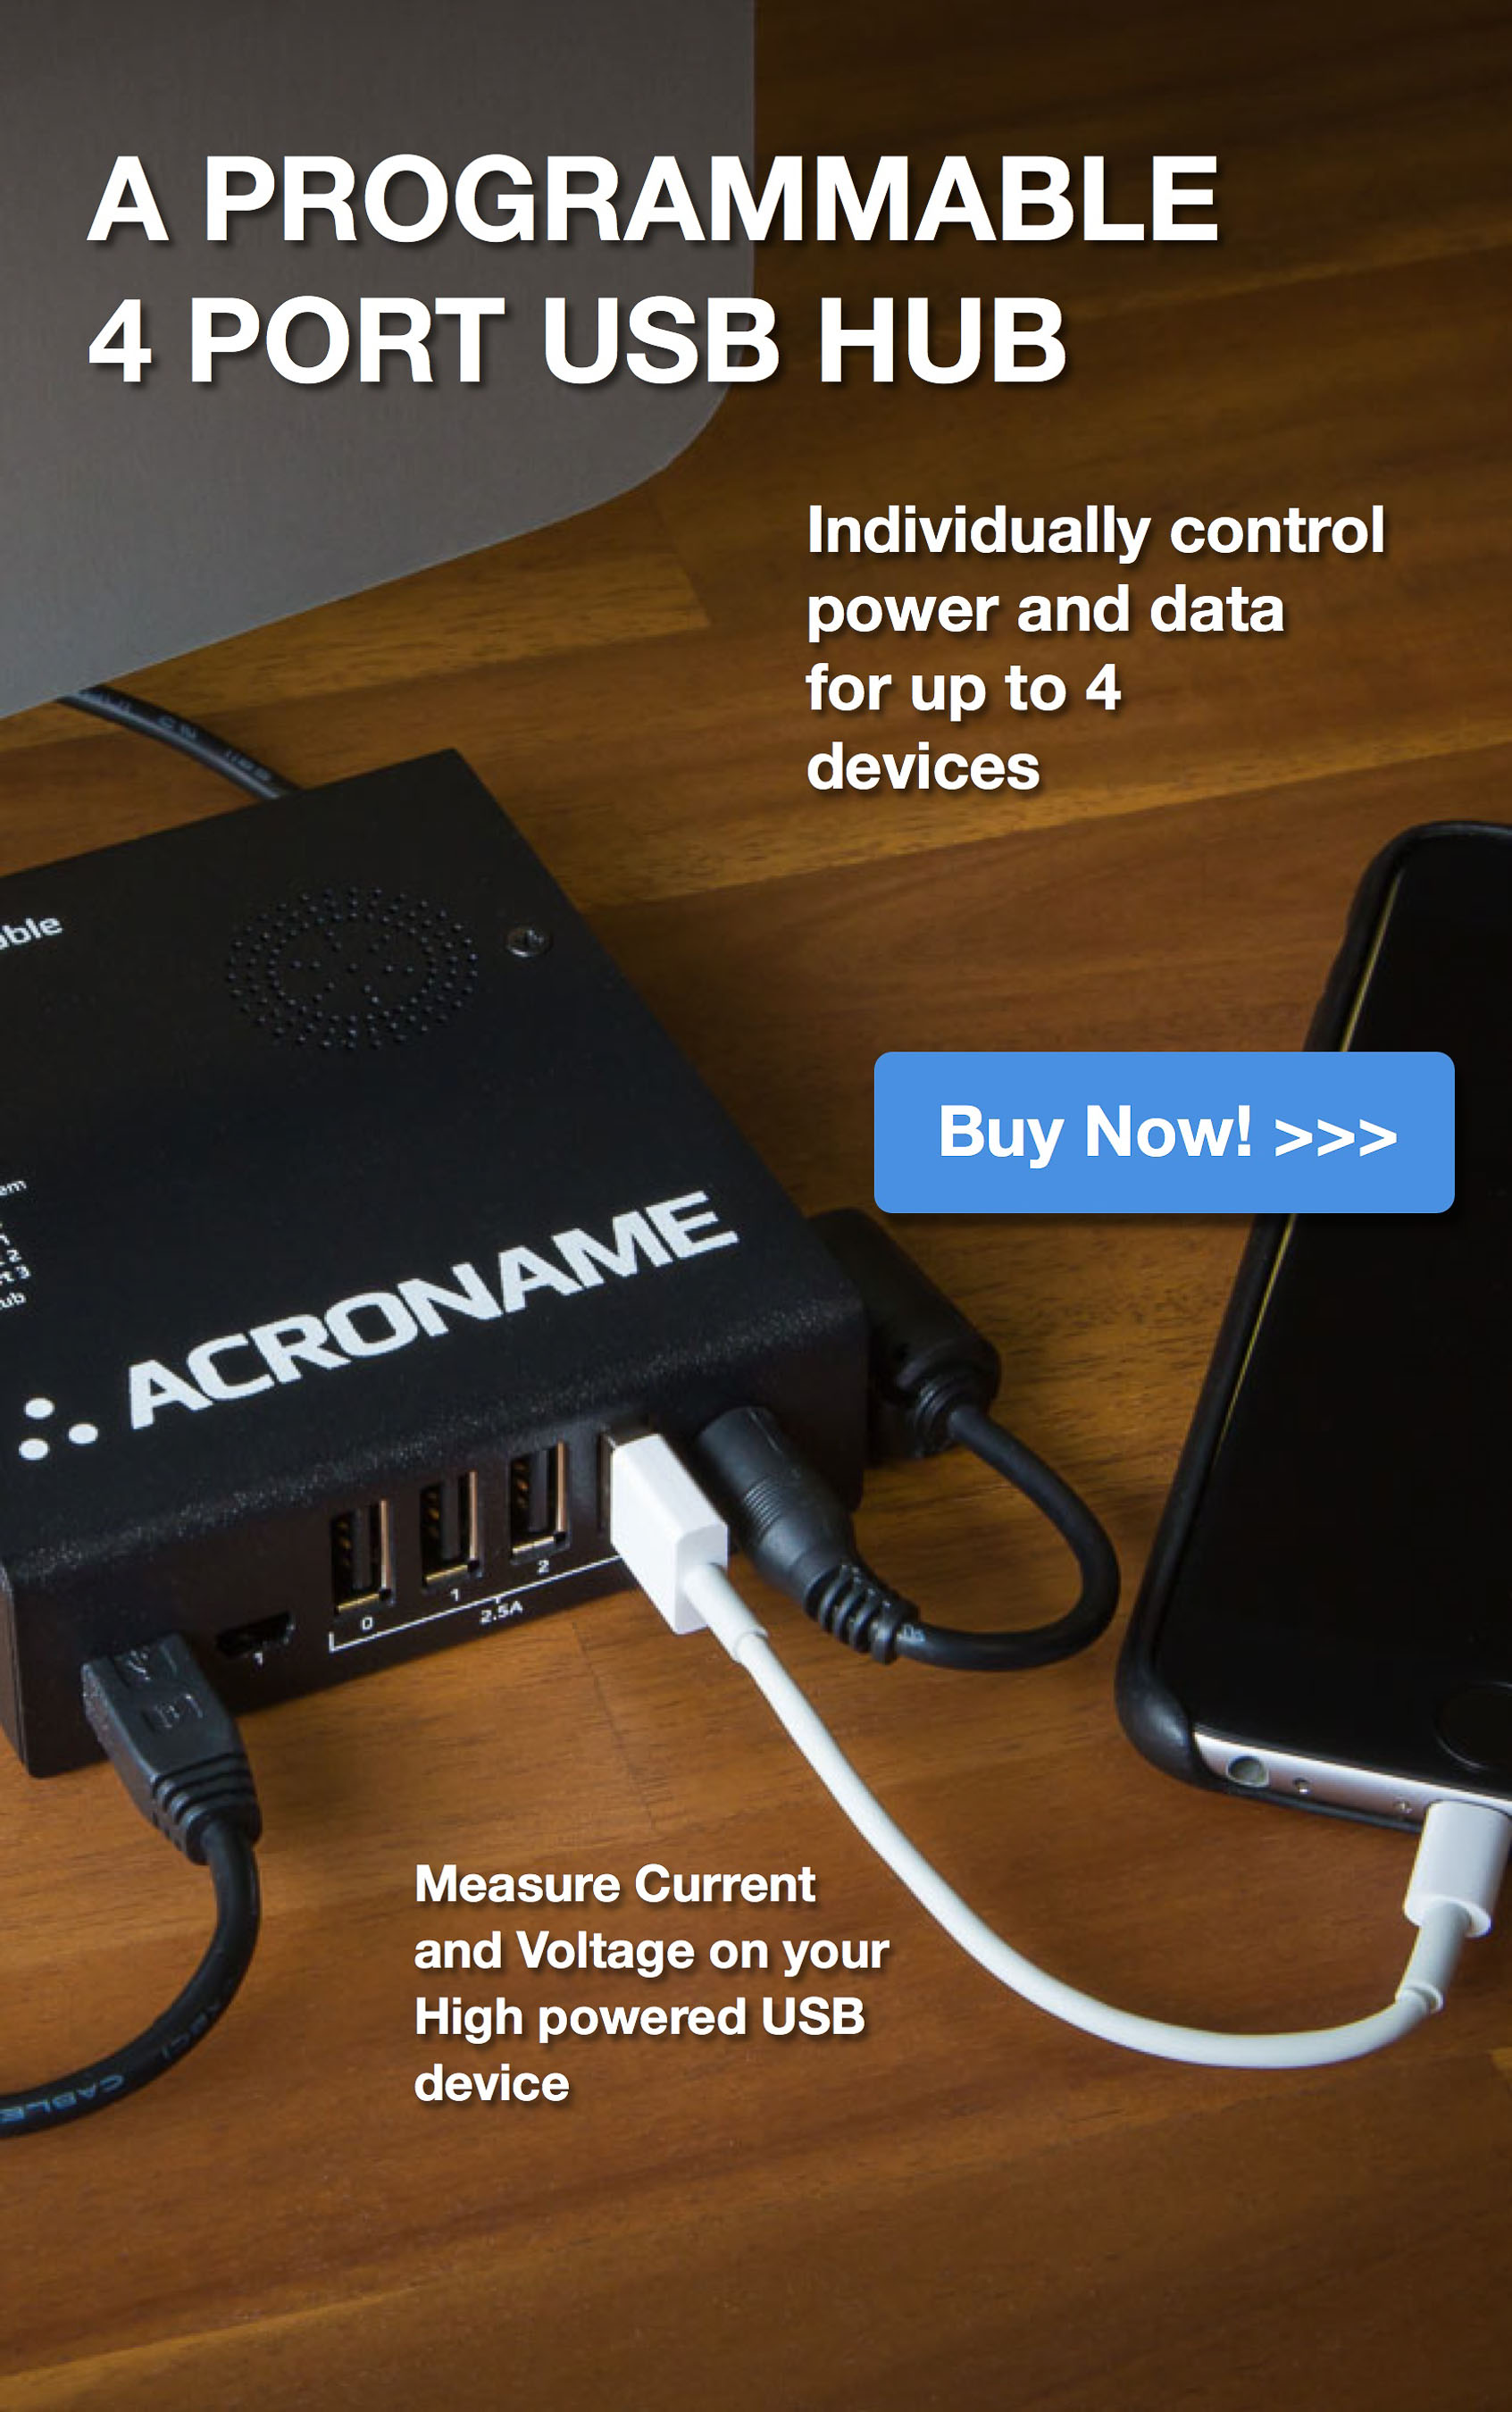 Acroname Programmable Industrial 4 port USB Hub